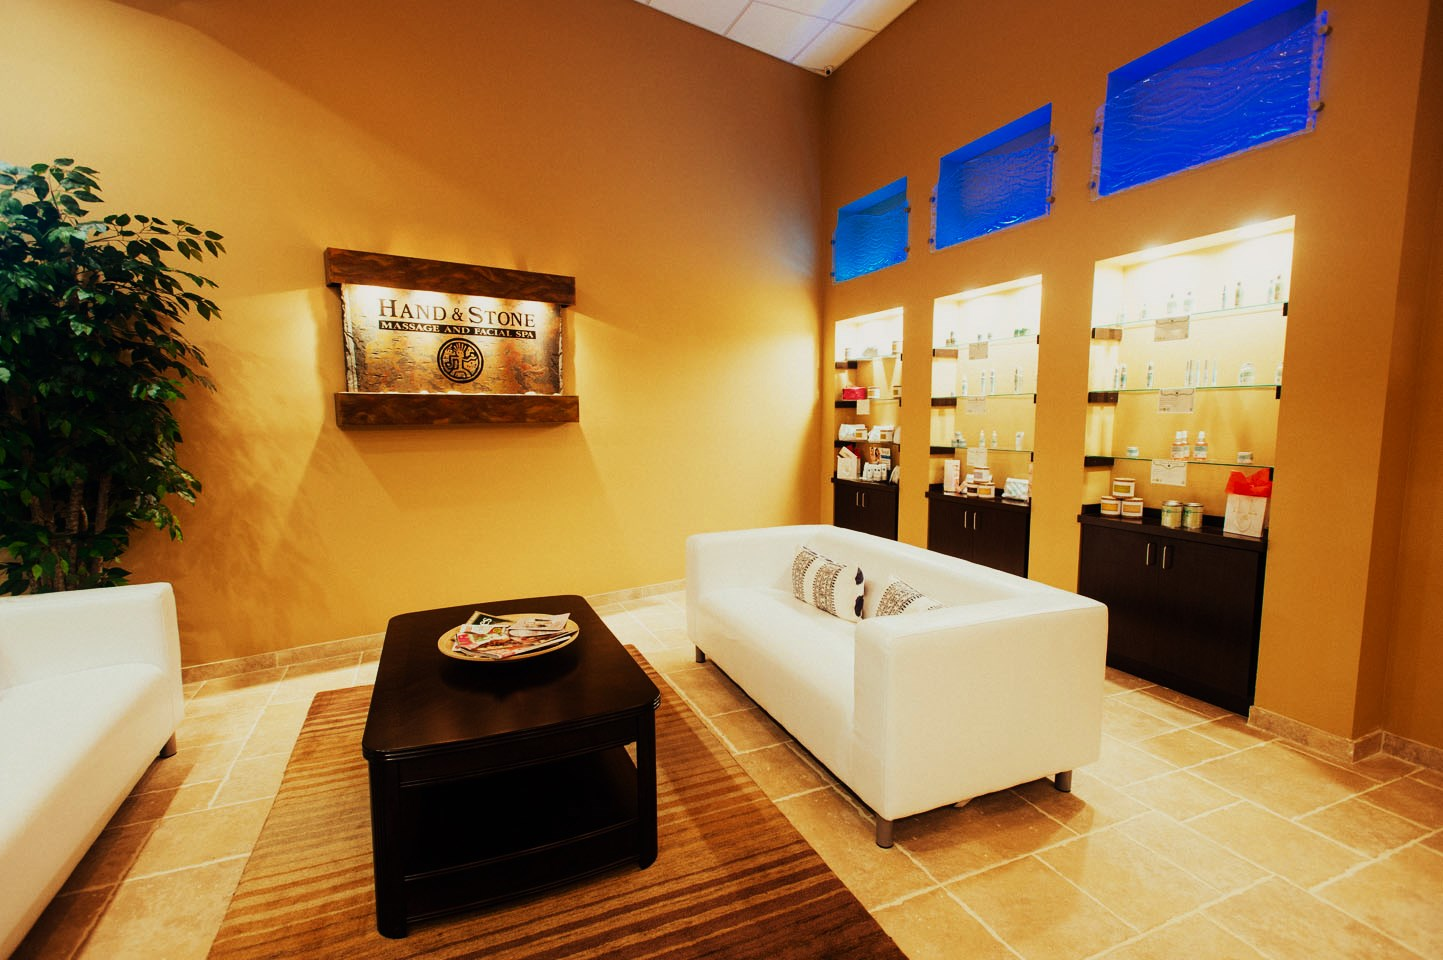 Hand & Stone Massage and FacialSpa Jacksonville, FL DLP, LLC  Metal Framing, Drywall, Sound Board, Acoustical Ceilings, Doors and Frames, Carpentry